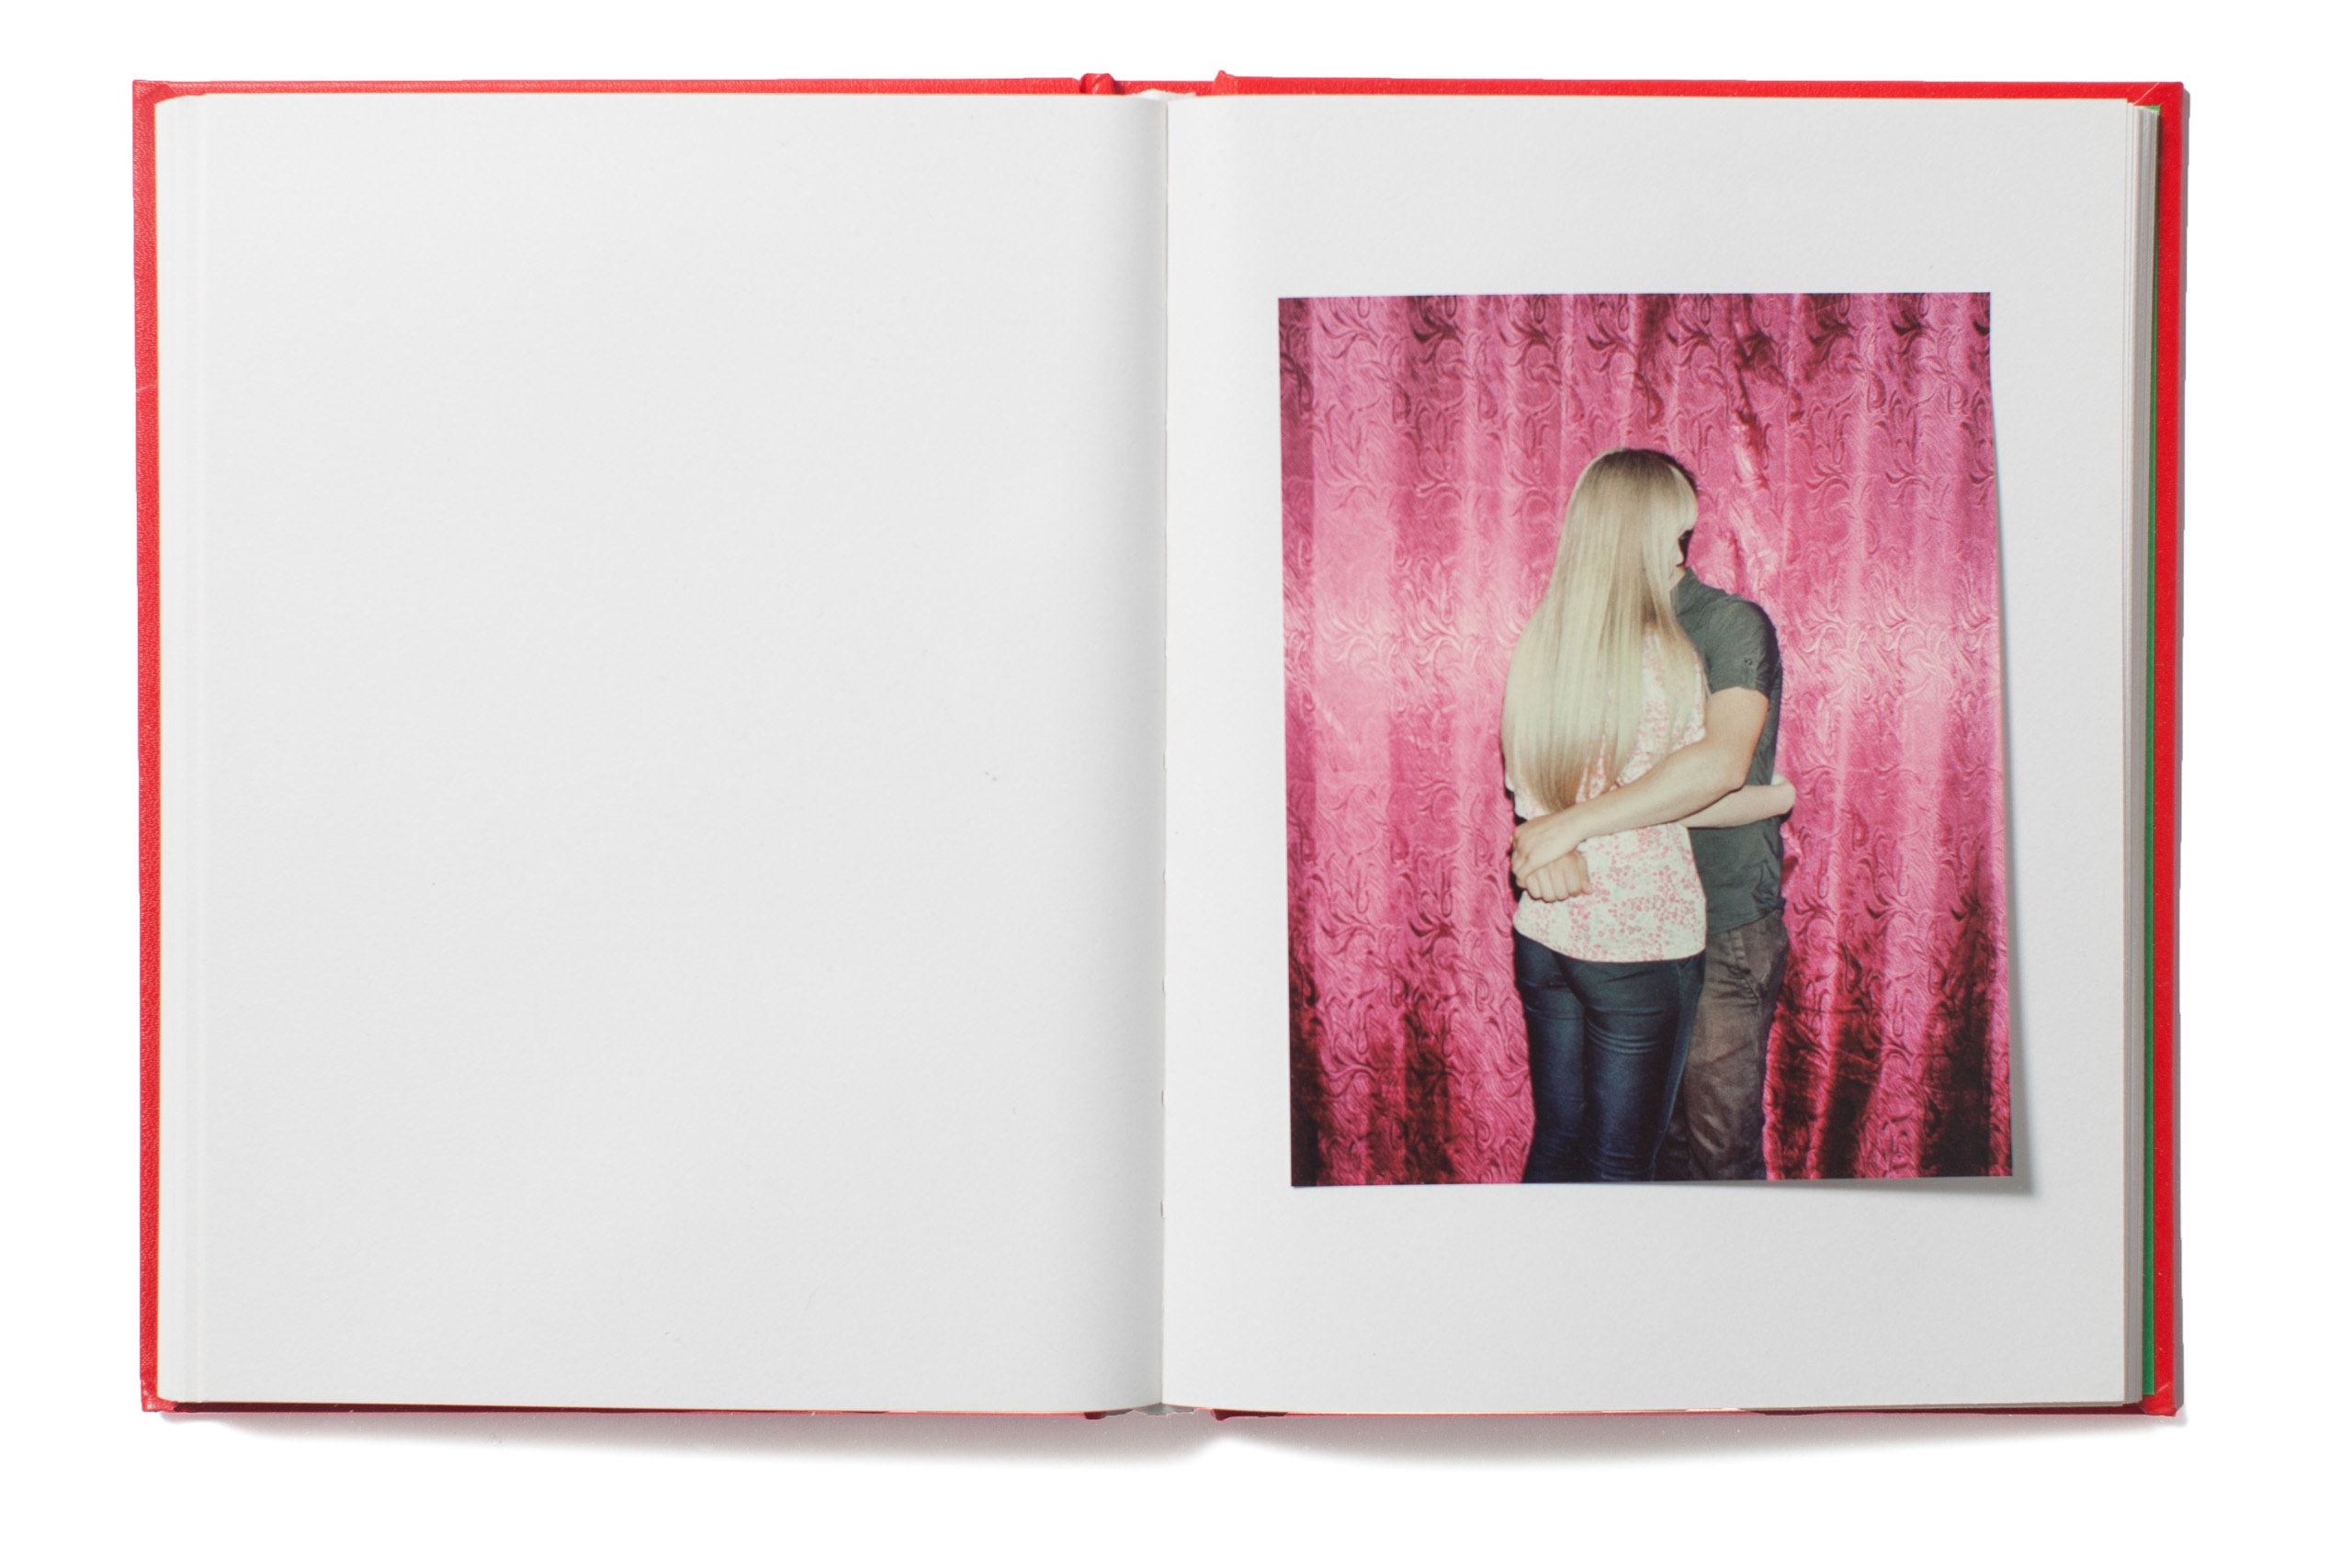 It's rare to see photography as realized and complex as Rafal Milach'sThe Winners, a projectdocumenting notable people, things, and institutions of Belarus. Milach's oft-deadpan portraits are reticent, yet hyperbolically uncanny, and capturesthe truth beyond the pageantry ofa country on economic decline. Taking a leap ahead of our current taste for simplistic irreverence, the project exudes wit, humor, and—perhaps most importantly—socio-political discourse. The project is as fine a display of its author's documentary restraint as it is an exhibition of his eye for aesthetic formalism.The book, in which the images are published, is designed with a elegant concision on par with the photography for which it contains.                                                               -Alexander Ho, Digital Art Director, TIME